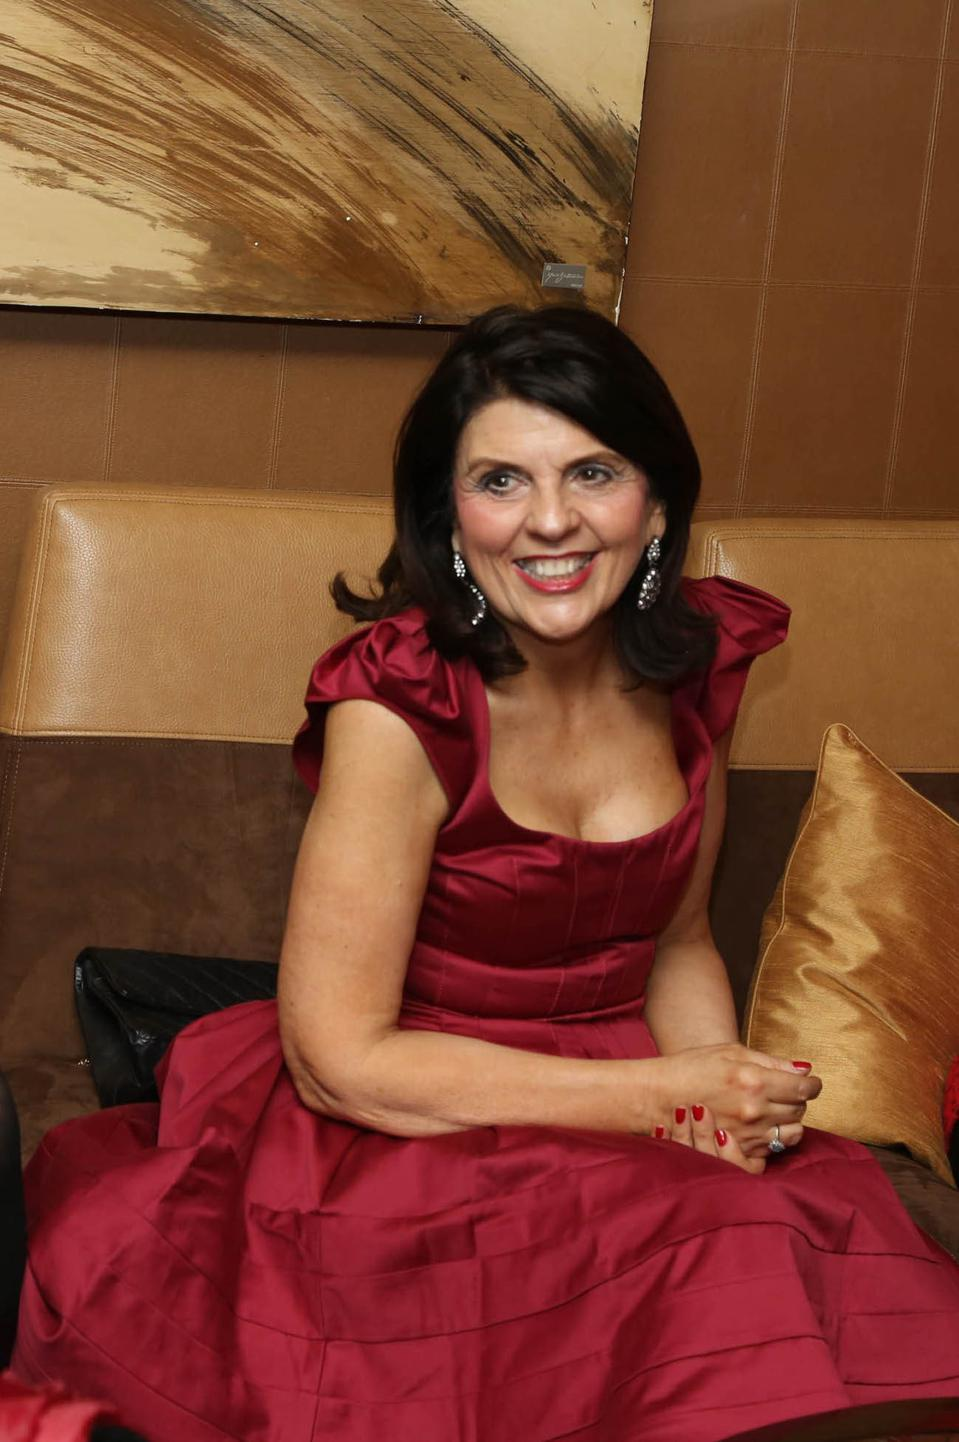 Susan Miller, Astrology Zone founder in a red dress